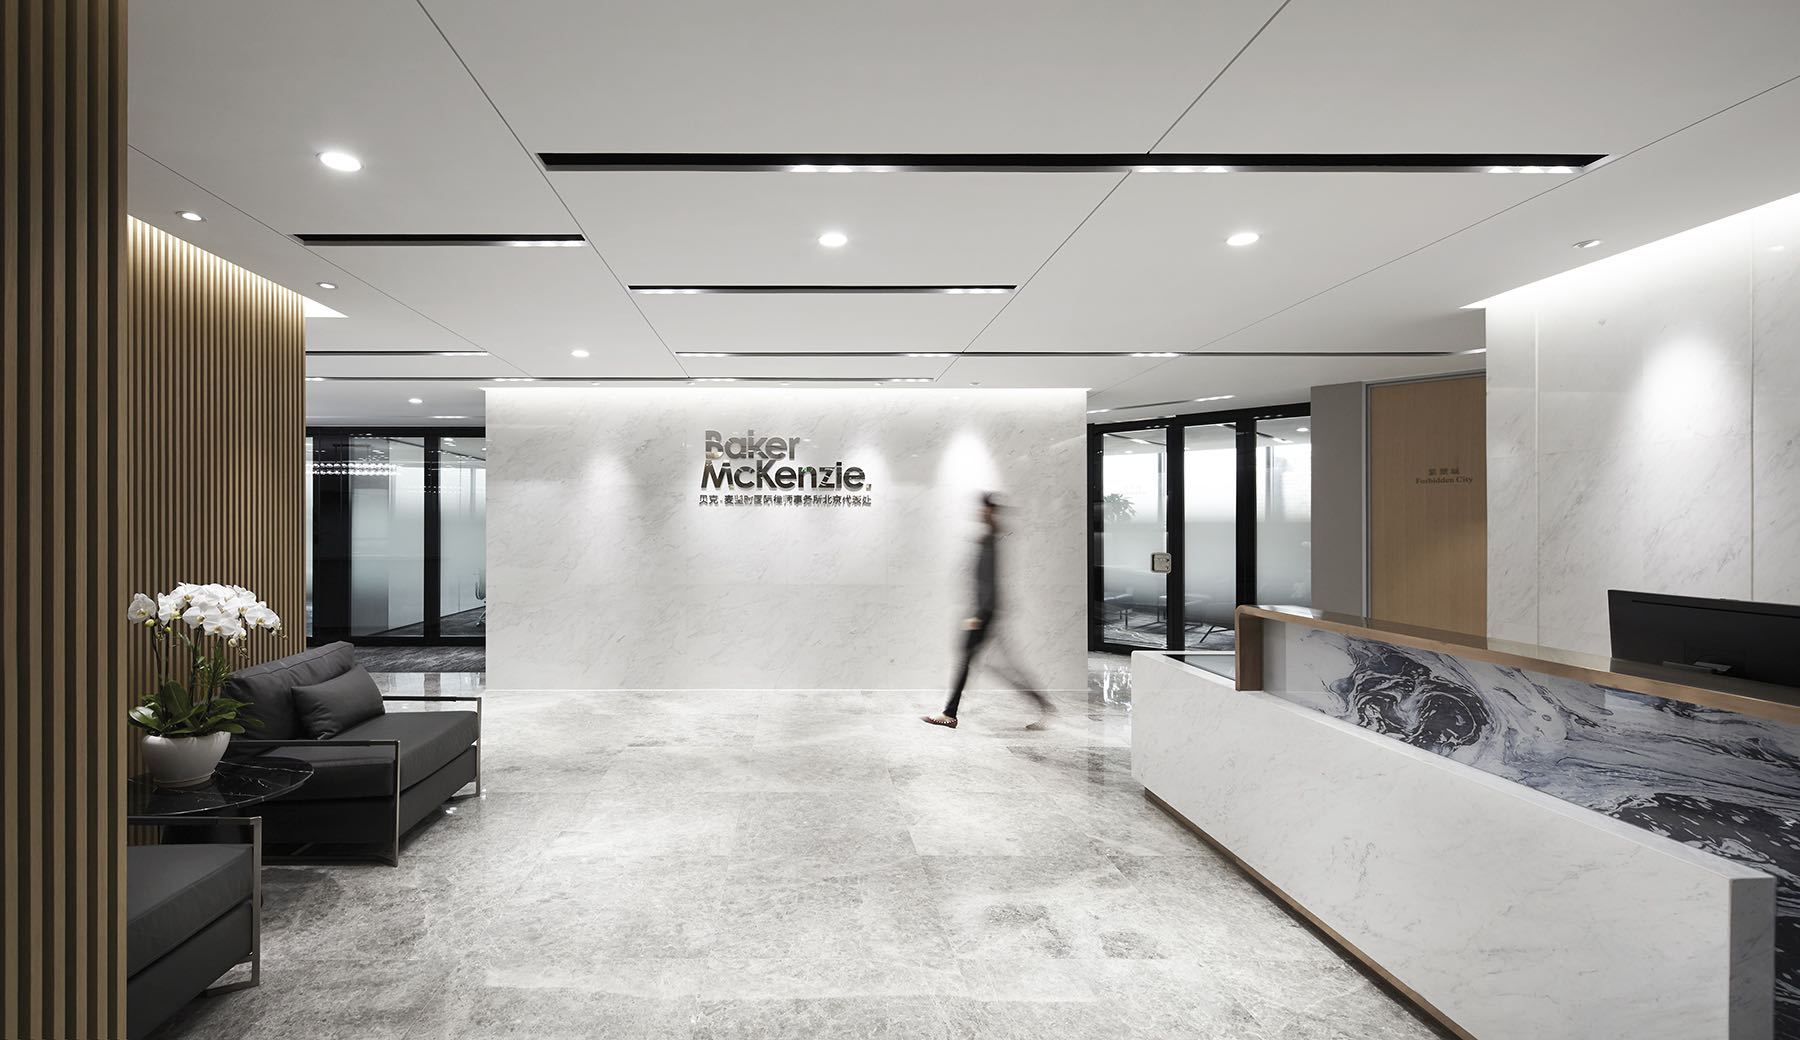 baker-mckenzie-office-1